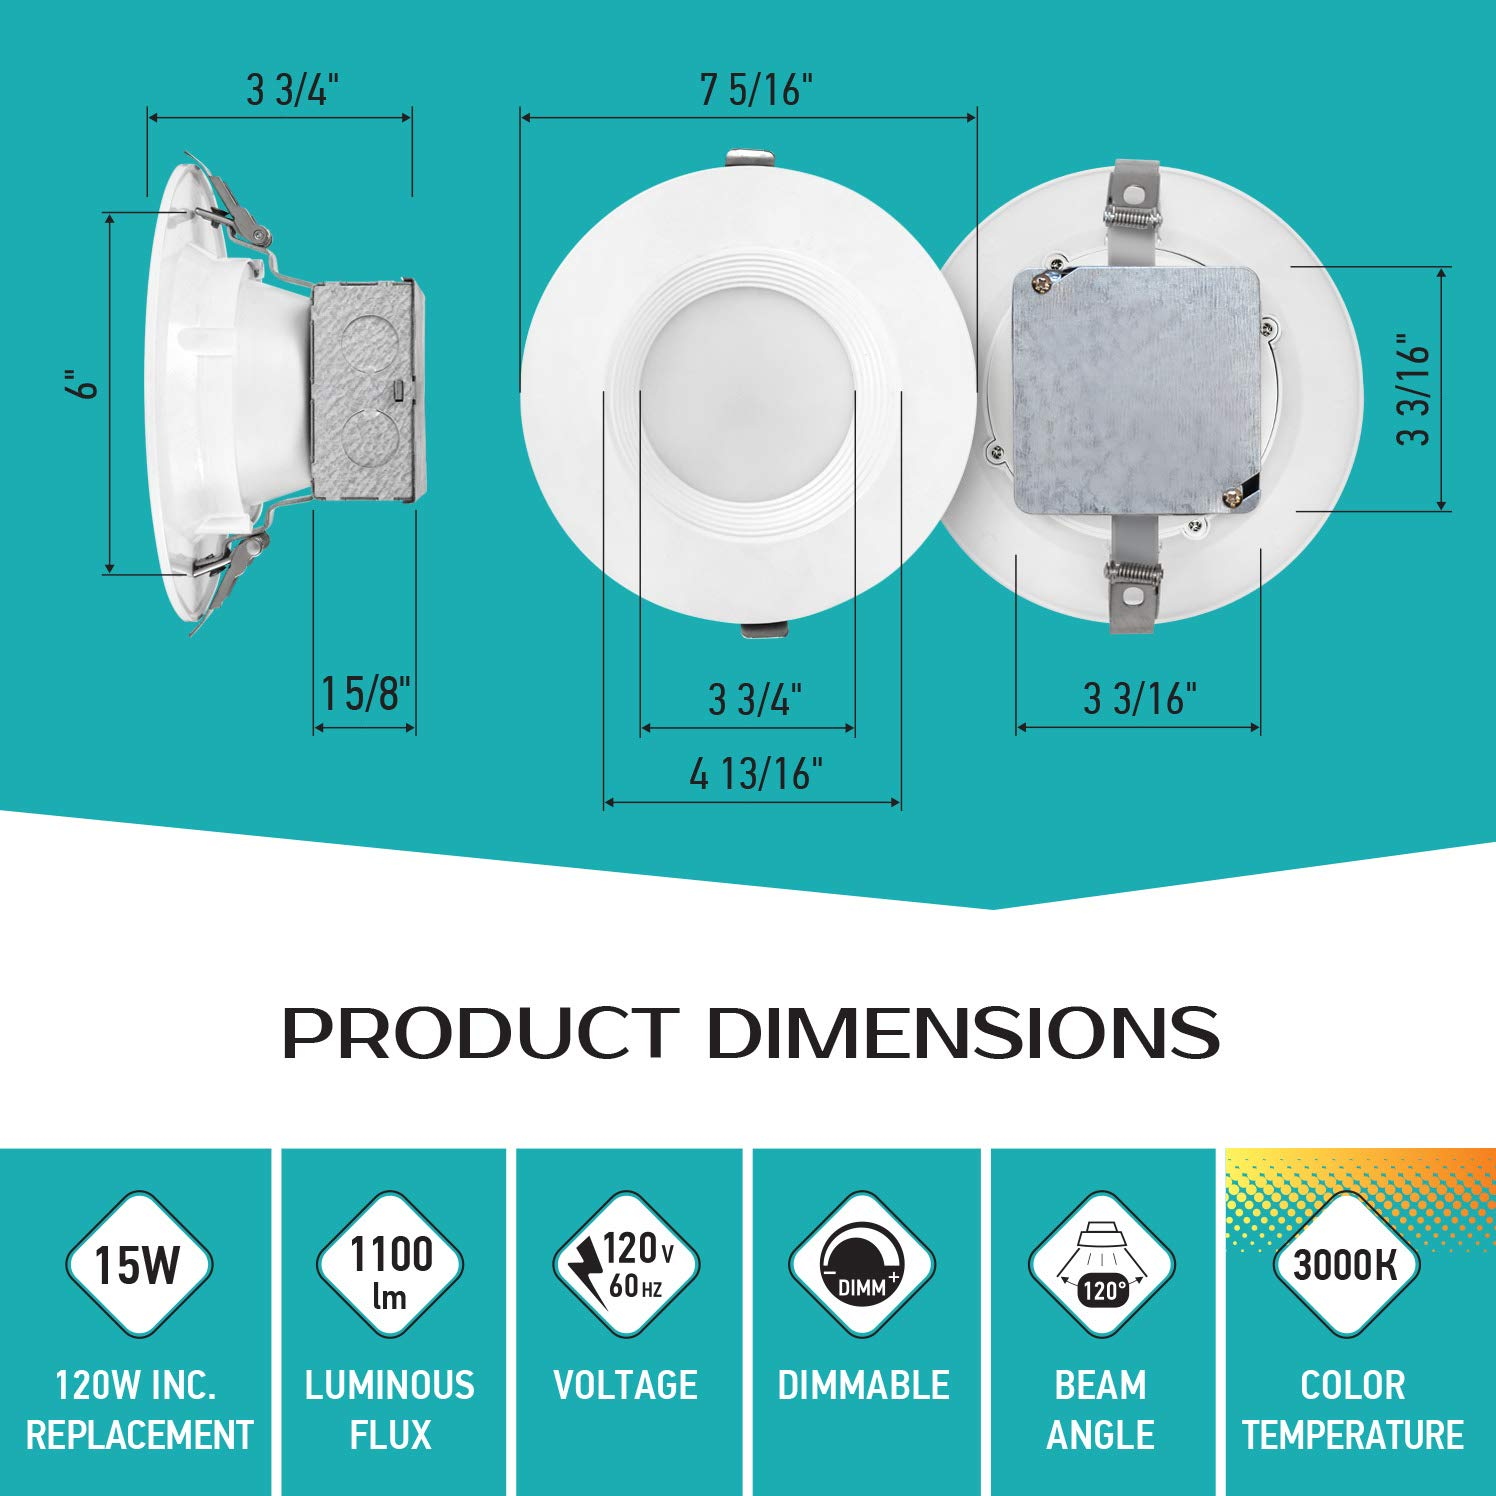 6 inch LED Ceiling Recessed Downlight With Junction Box Baffle Trim IC Rated 15W 120Watt Repl 12 Pack LED Canless Downlight LUXTER 4000K 1100Lm Wet Location ETL and Energy Star Listed Dimmable